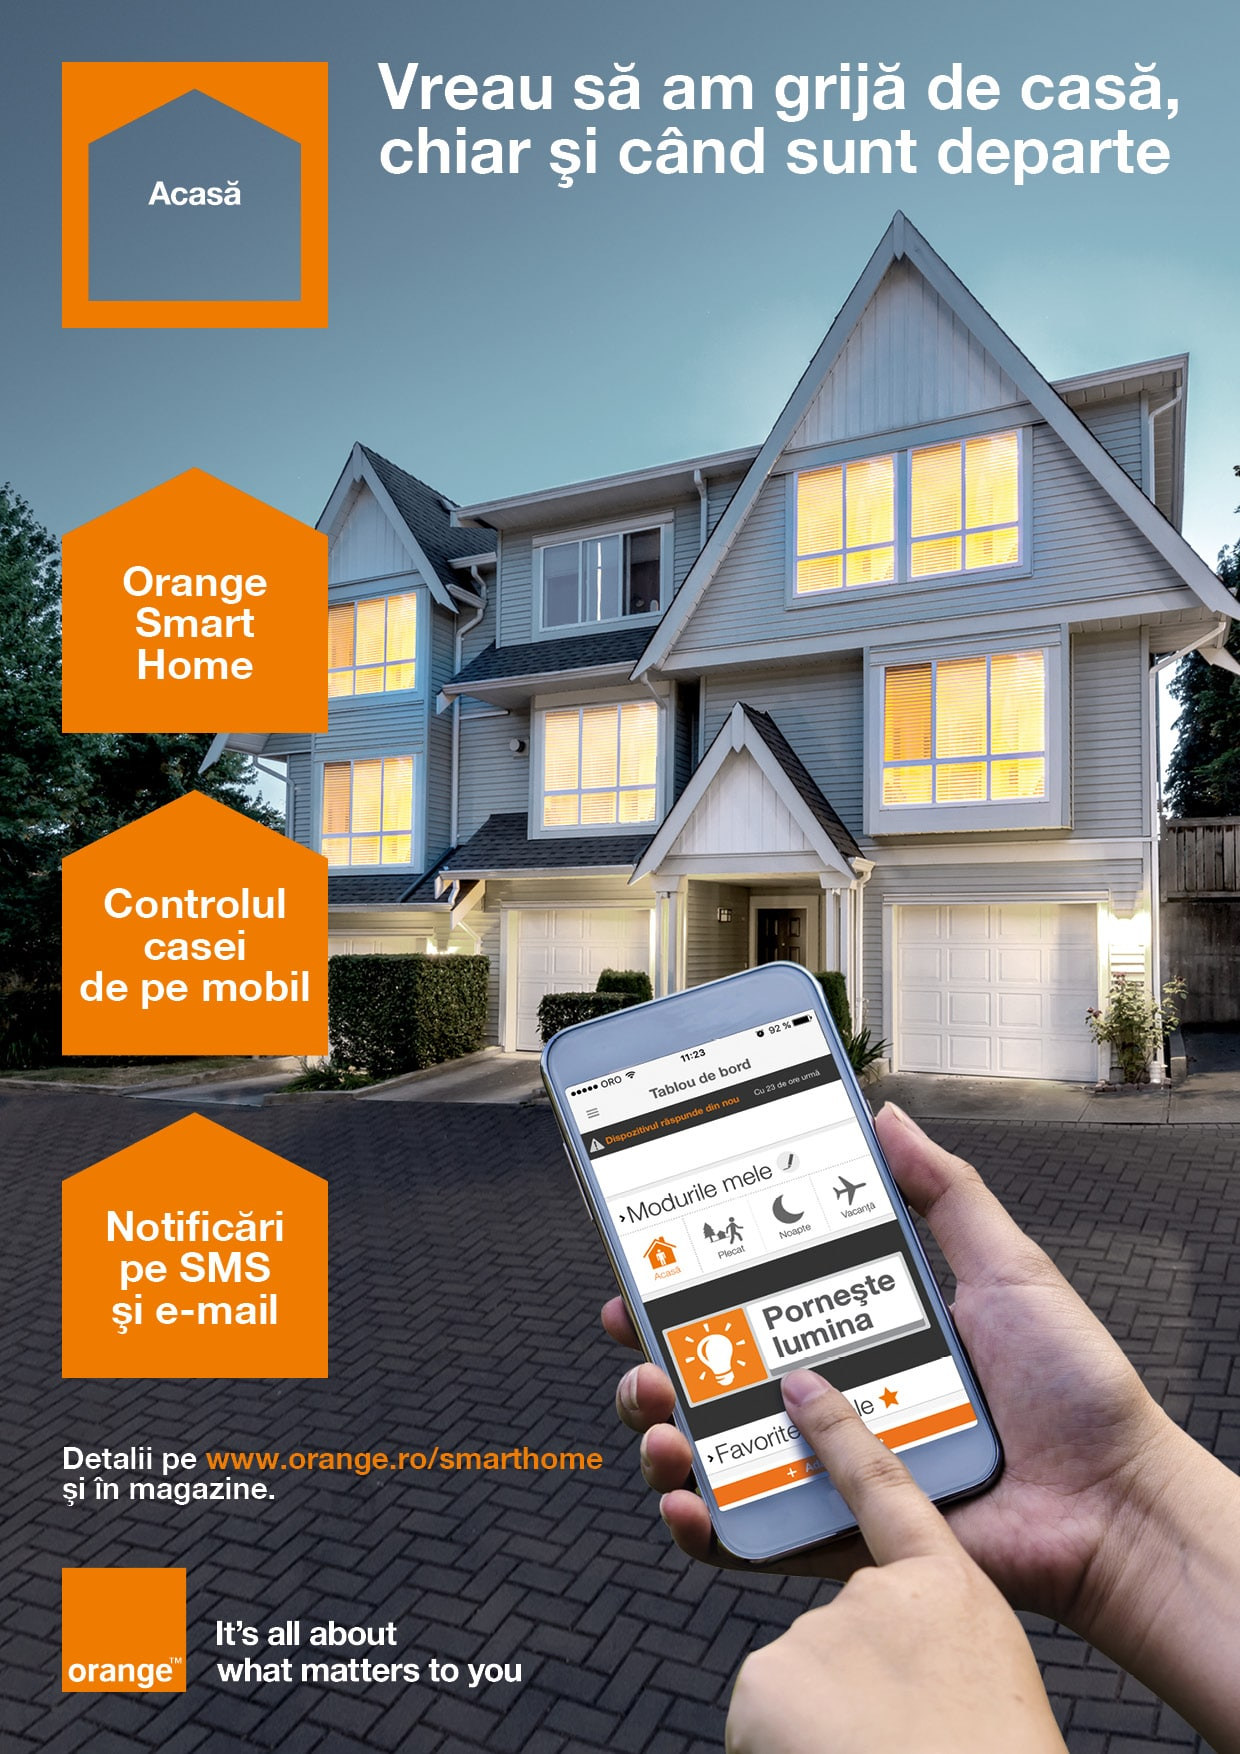 Îmi place ideea Orange Smart Home